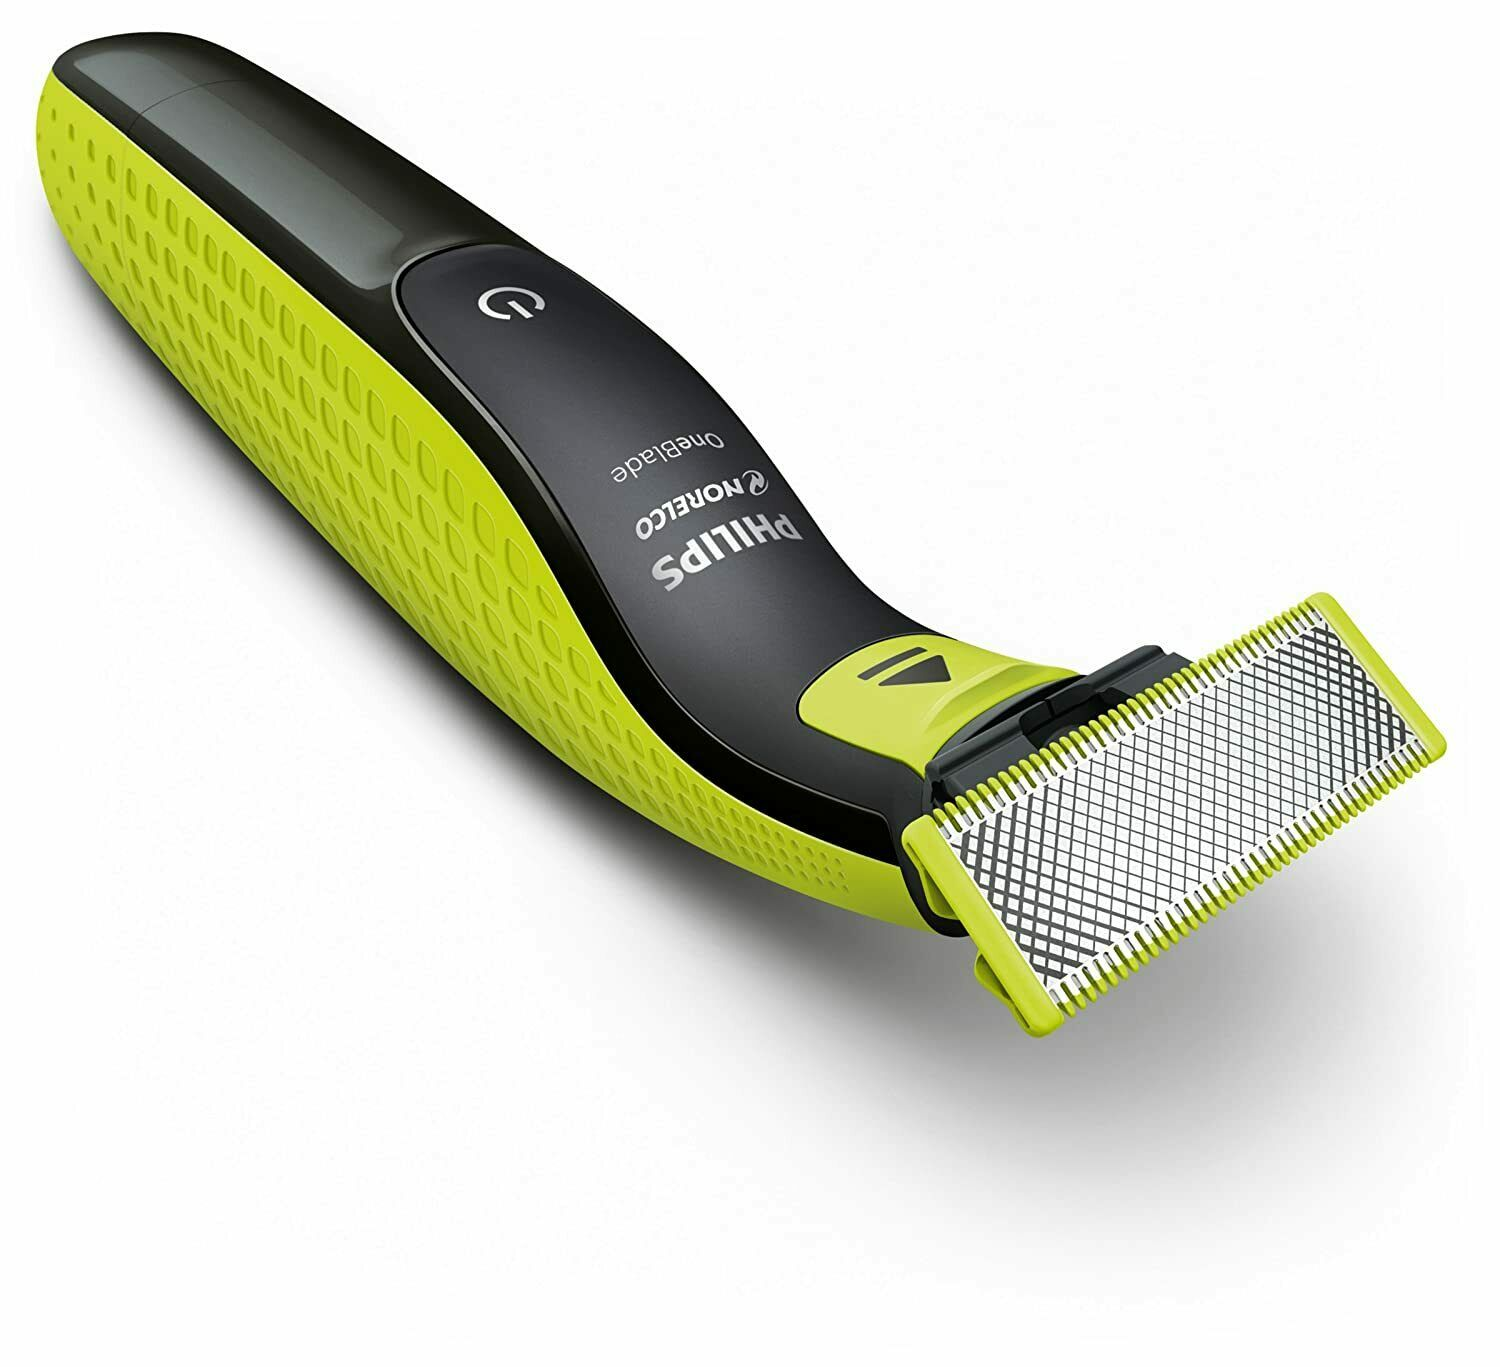 Hybrid Electric Trimmer Shaver Philips Norelco OneBlade QP25